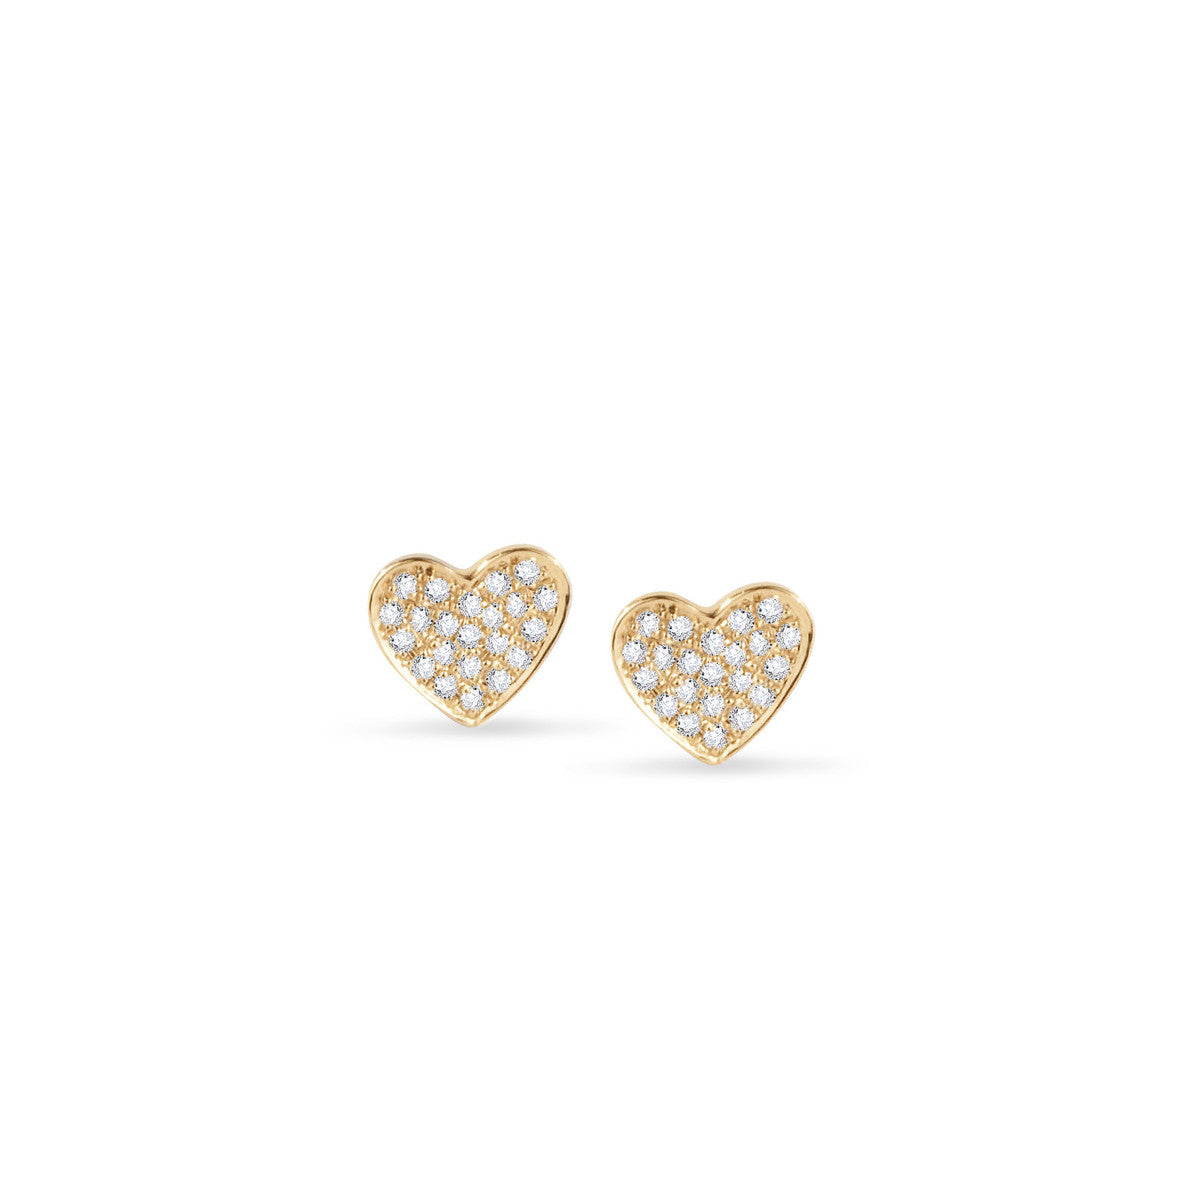 Small Pave Flat Heart Stud